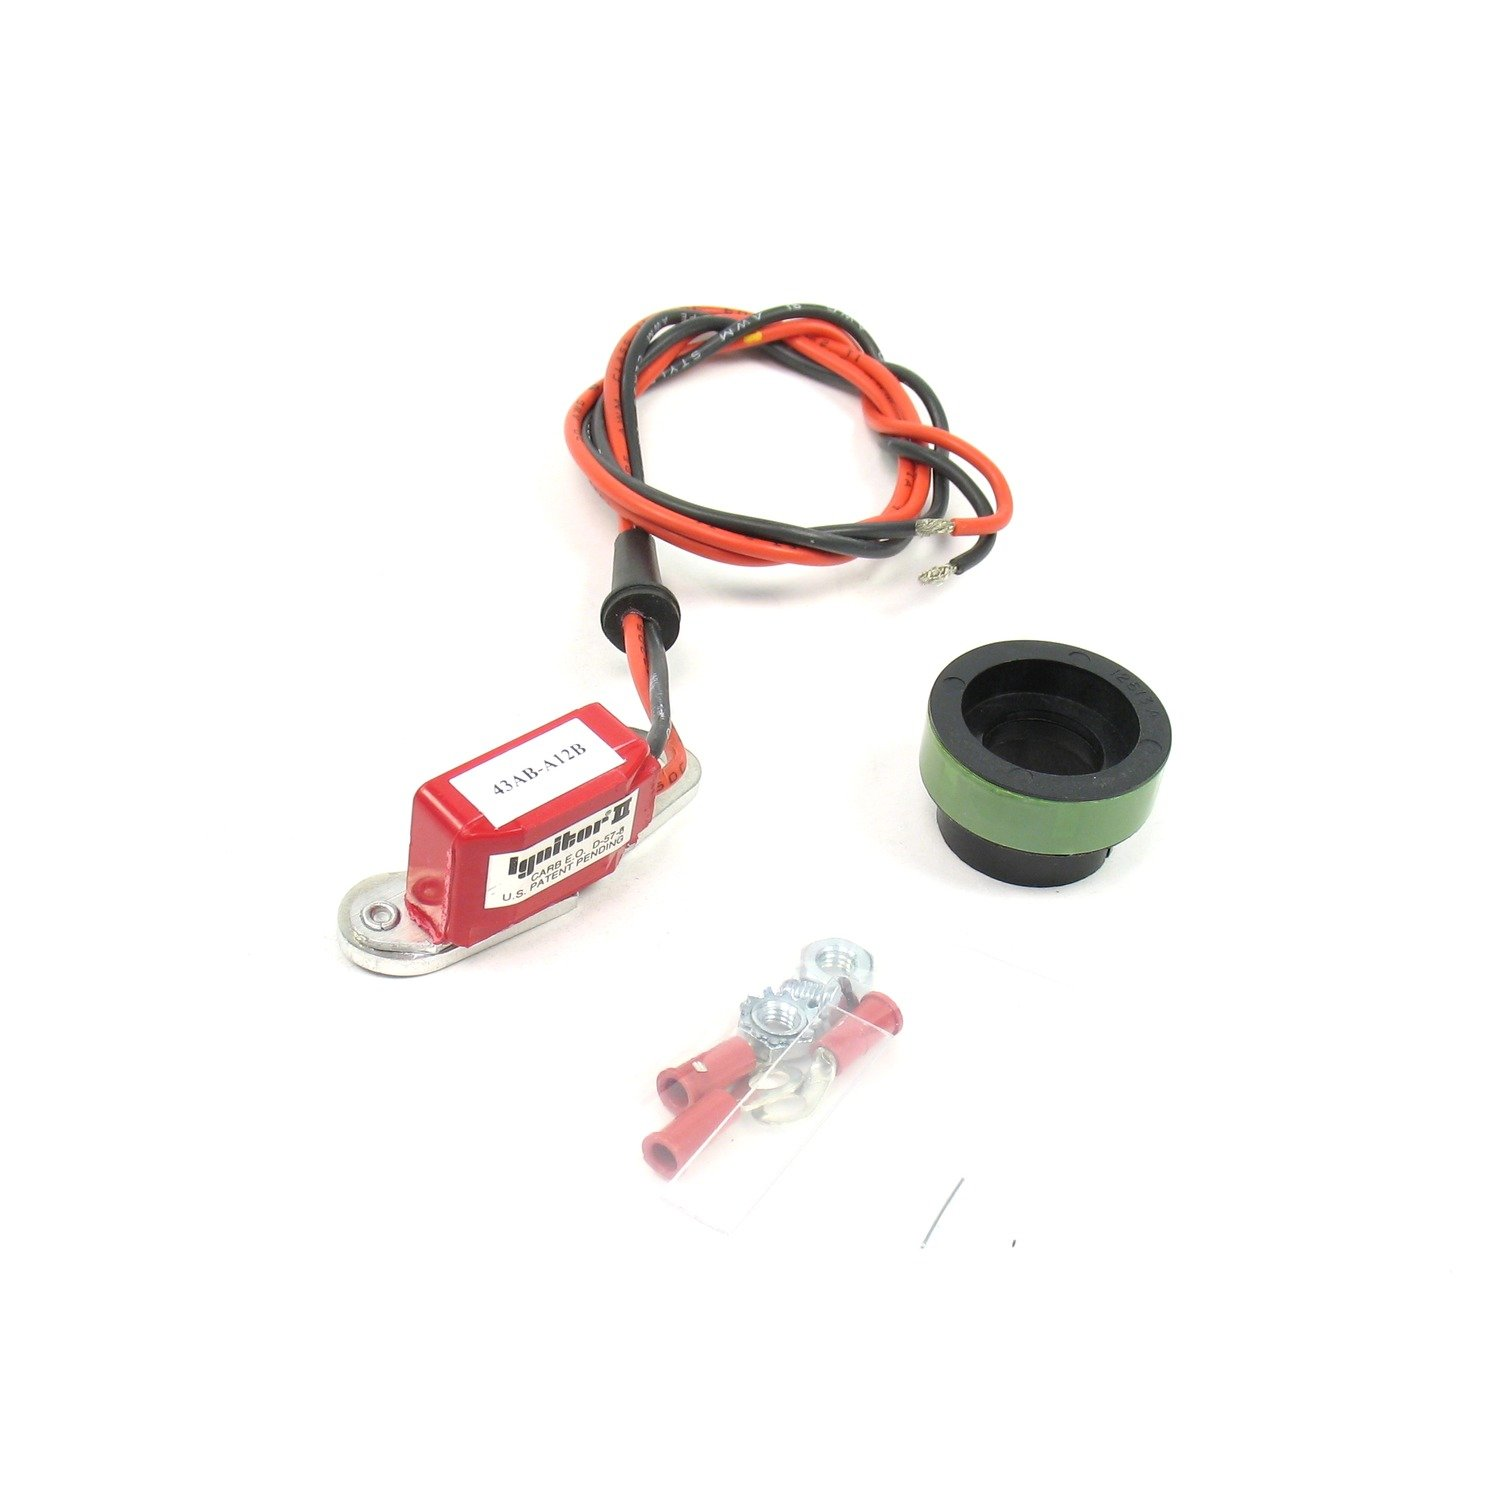 Pertronix 91266 Ignitor II Adaptive Dwell Control for Ford 6 Cylinder